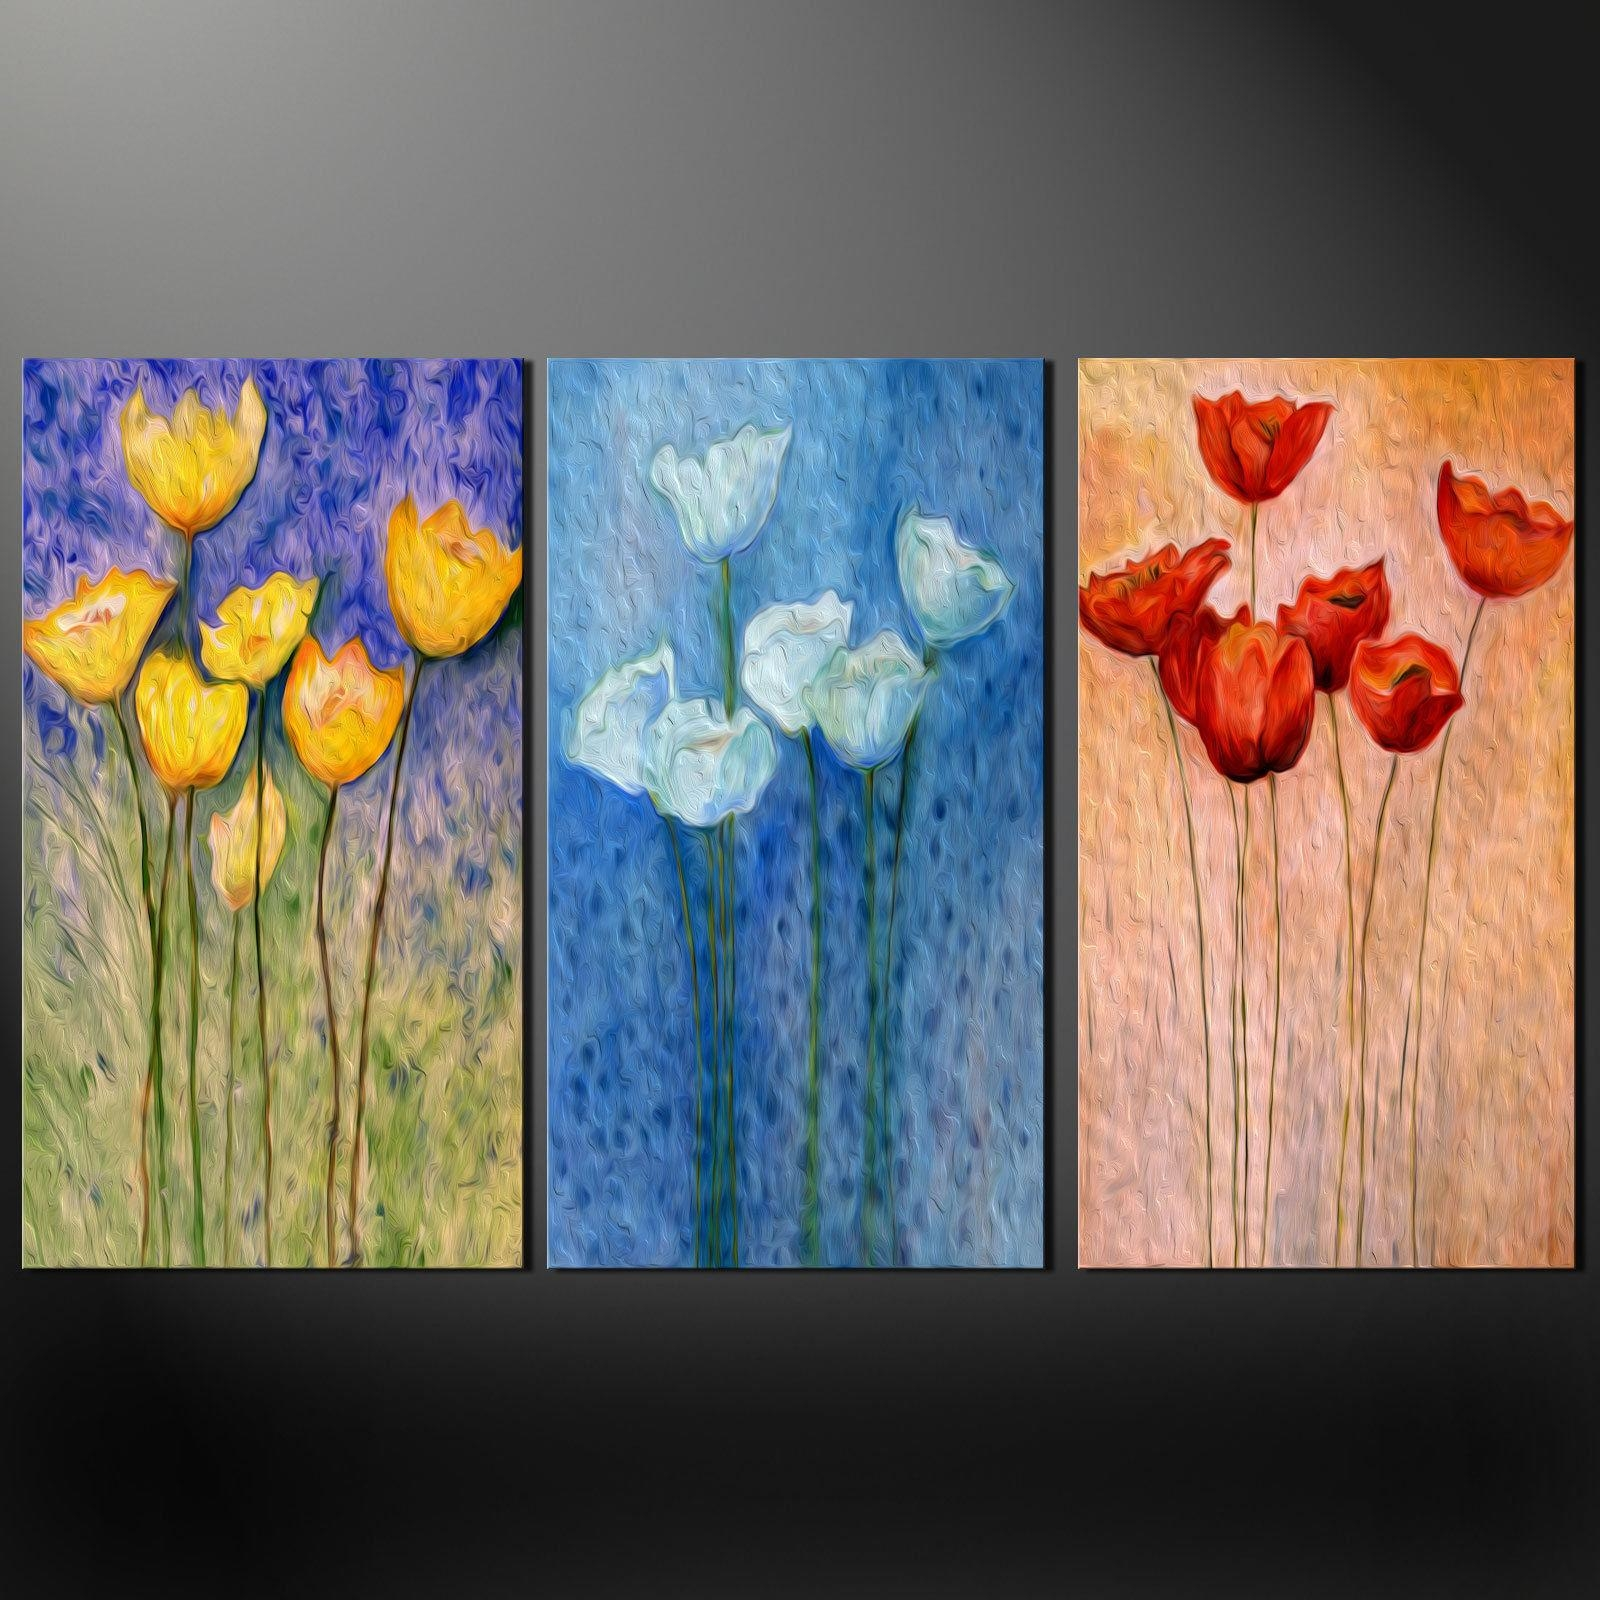 Floral Design Poppies 3 Panels Split Canvas Wall Art Pictures Within Floral Wall Art Canvas (View 15 of 20)